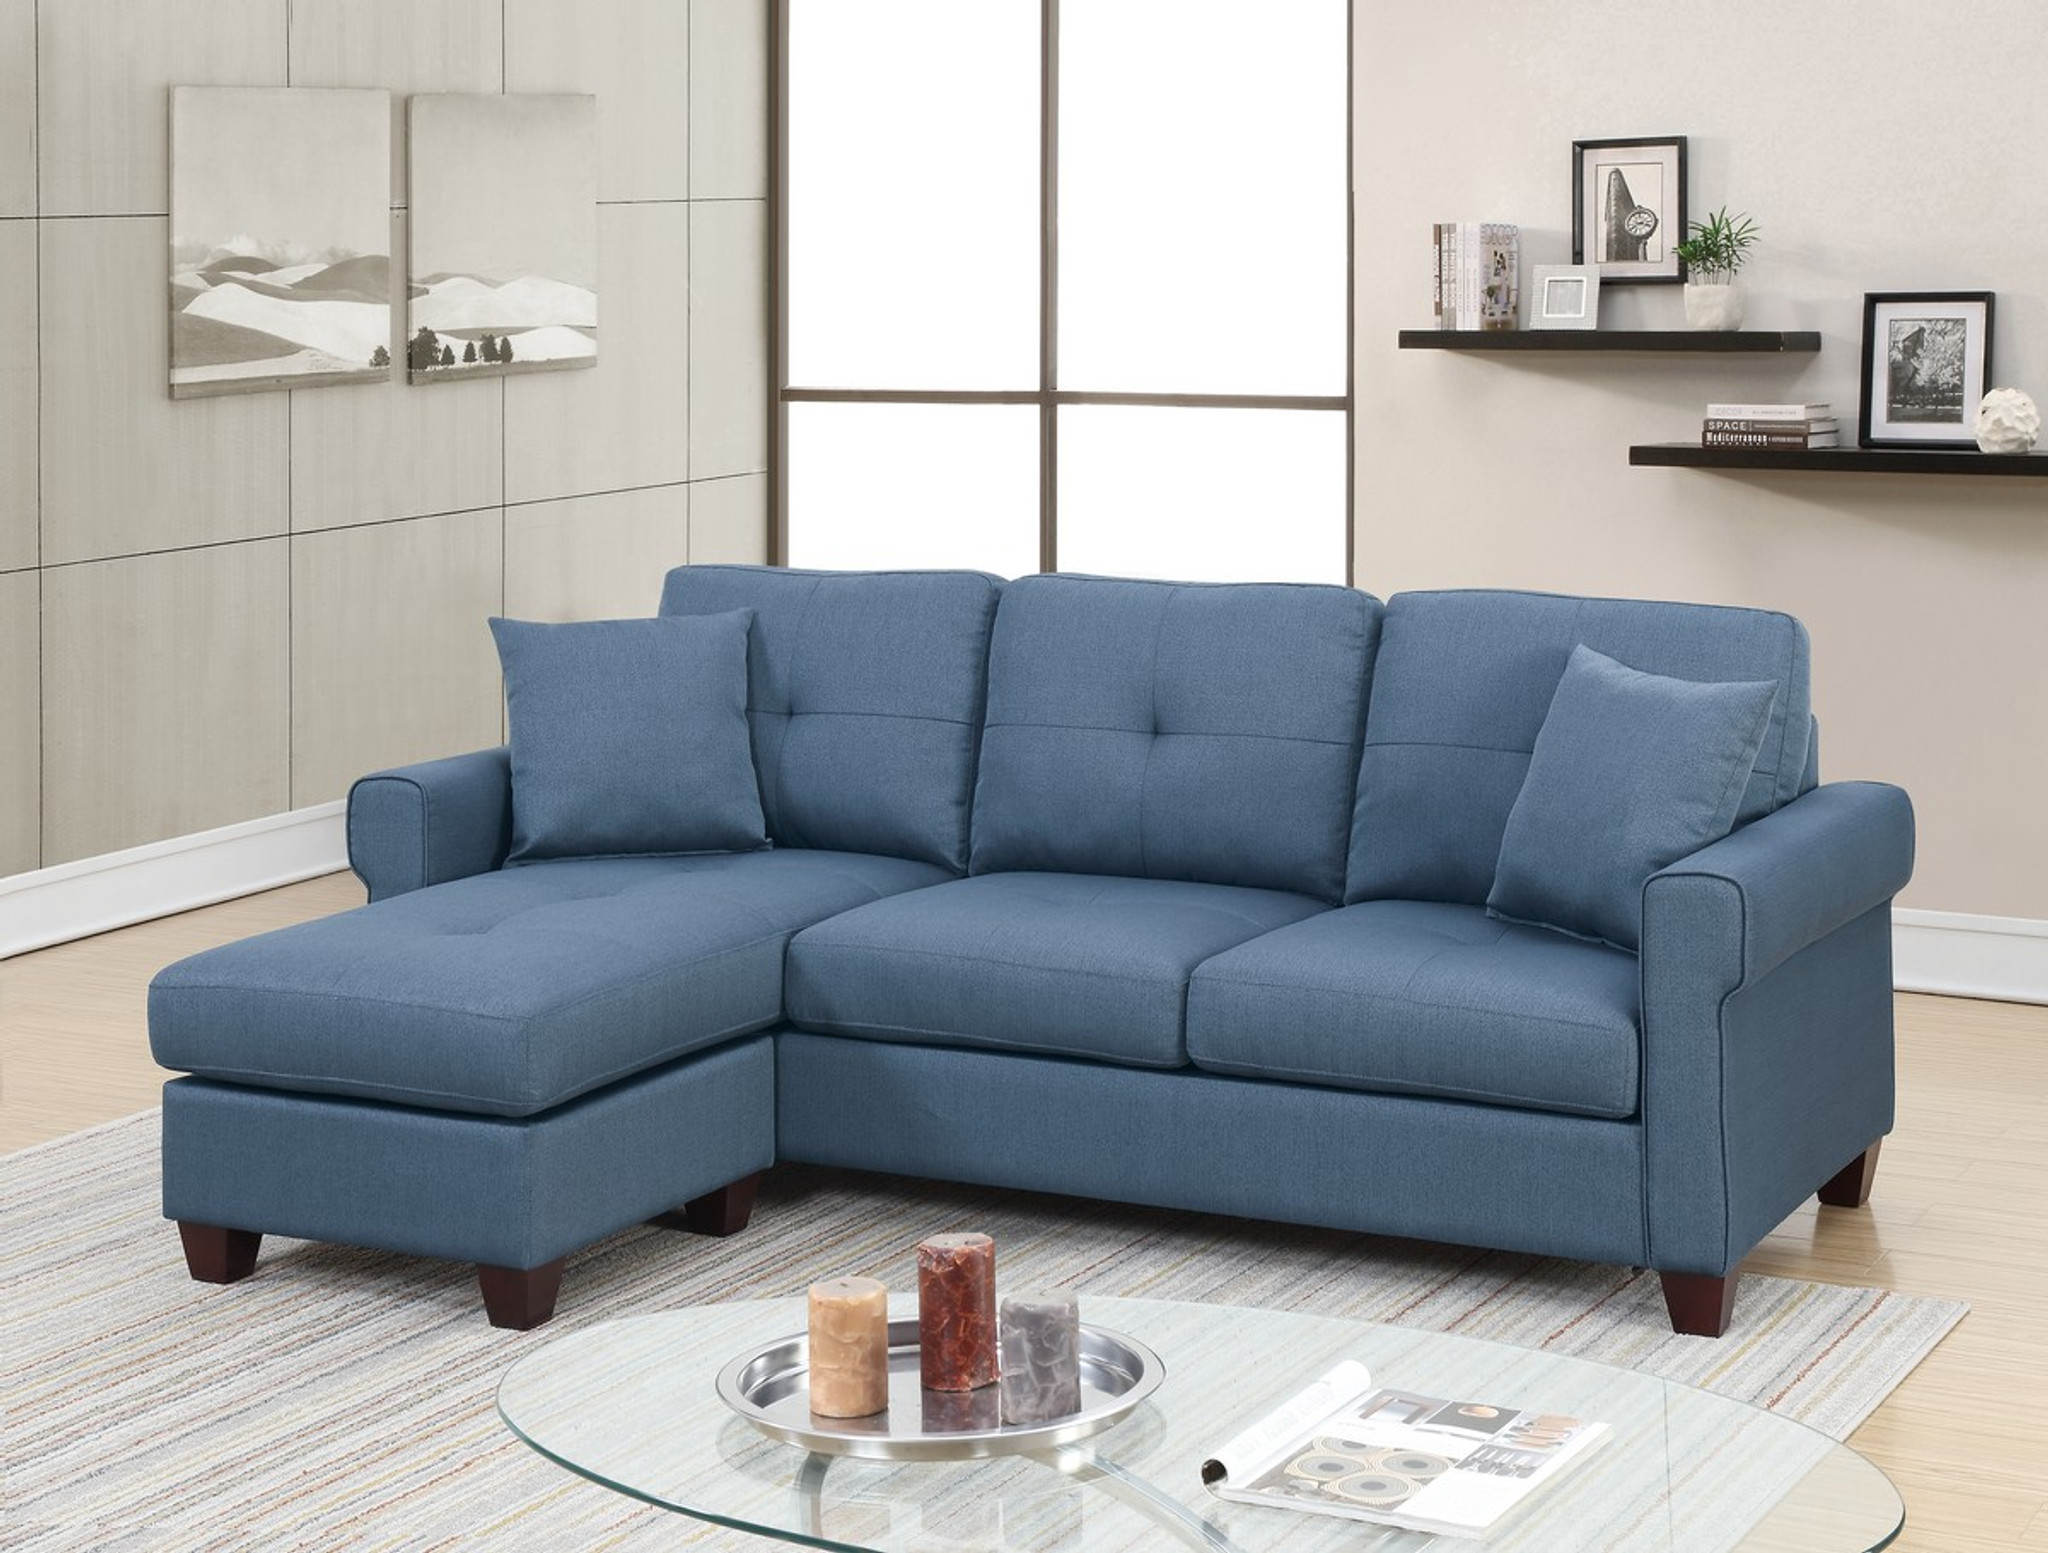 Fine 2Pc Luca Reversible Sectional Set In Blue Unemploymentrelief Wooden Chair Designs For Living Room Unemploymentrelieforg